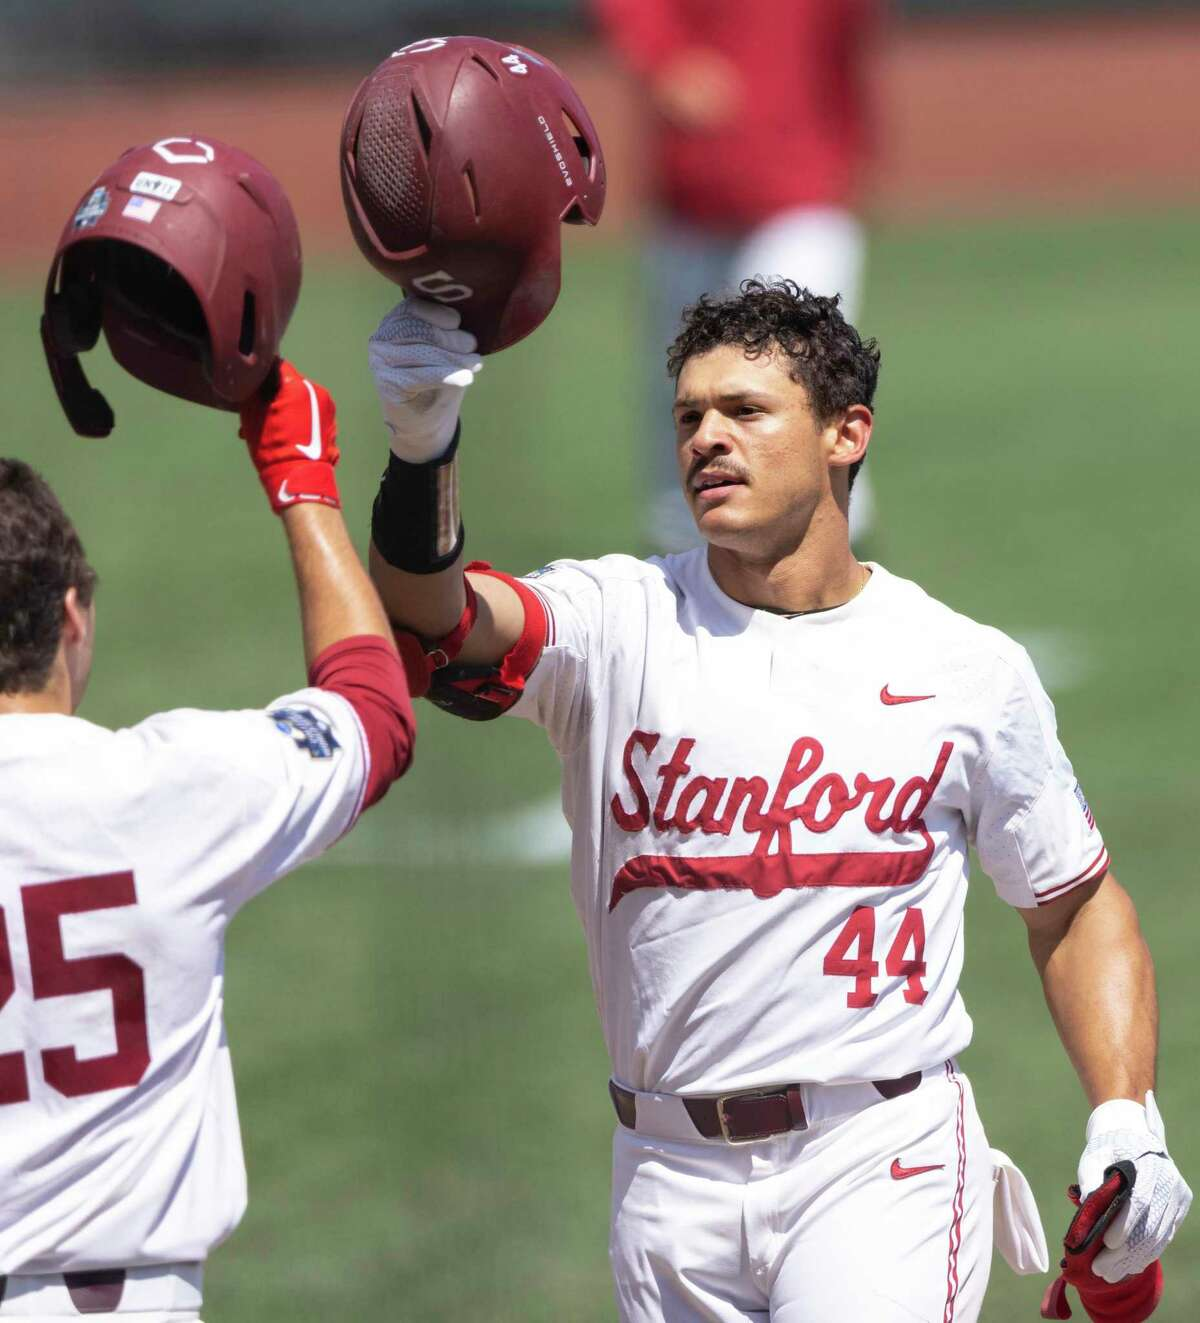 Stanford's Christian Robinson, right, celebrates with Kody Huff (25) after hitting a two-run home run against North Carolina State in the seventh inning in the opening baseball game of the College World Series Saturday, June 19, 2021, at TD Ameritrade Park in Omaha, Neb. (AP Photo/Rebecca S. Gratz)